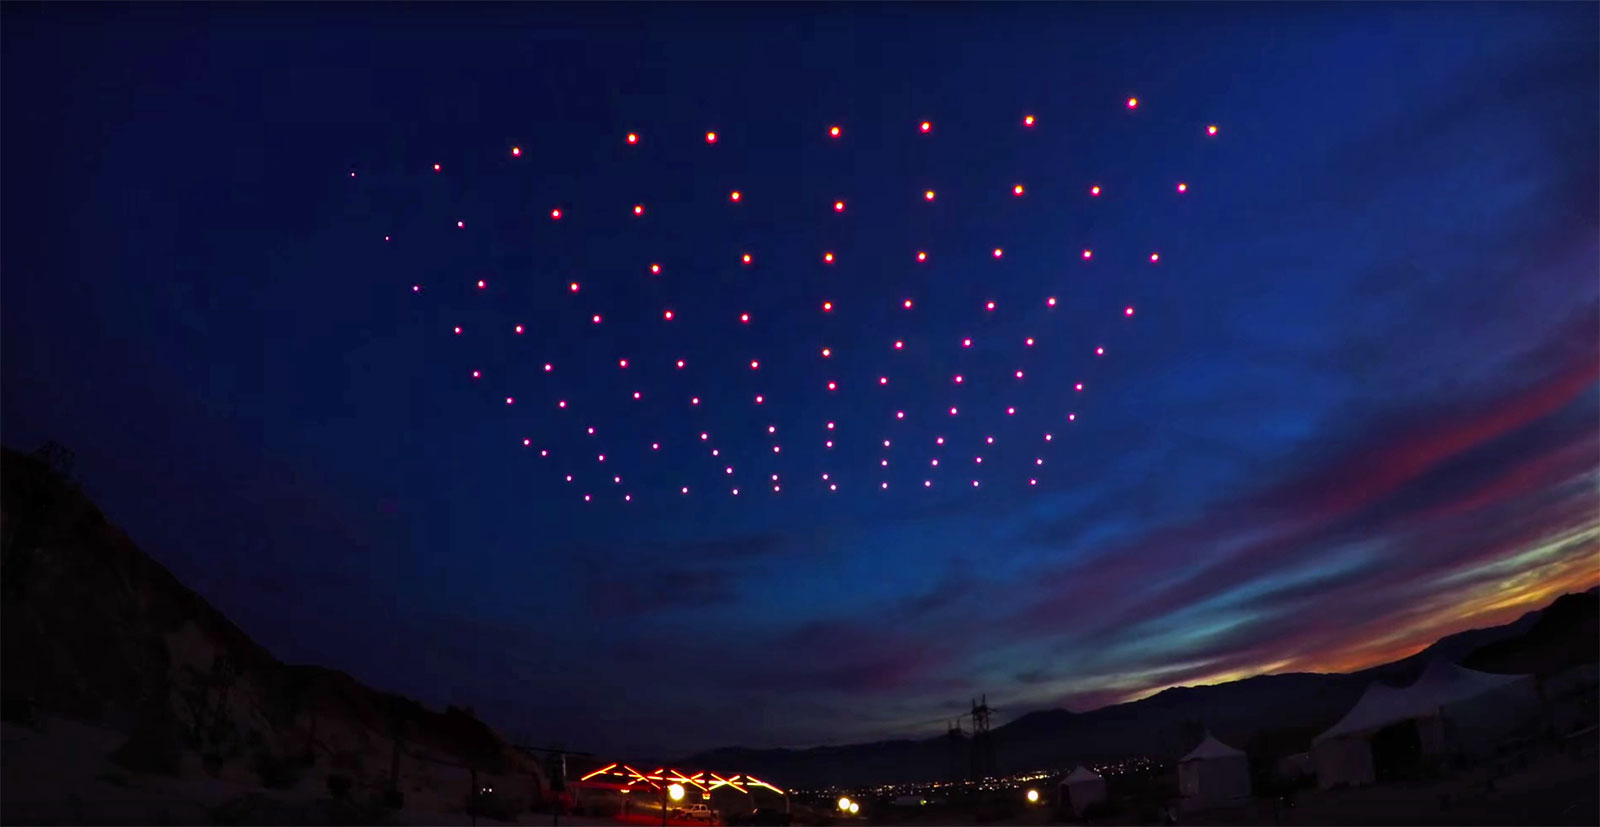 Intel's latest light show was the first FAA-approved drone swarm